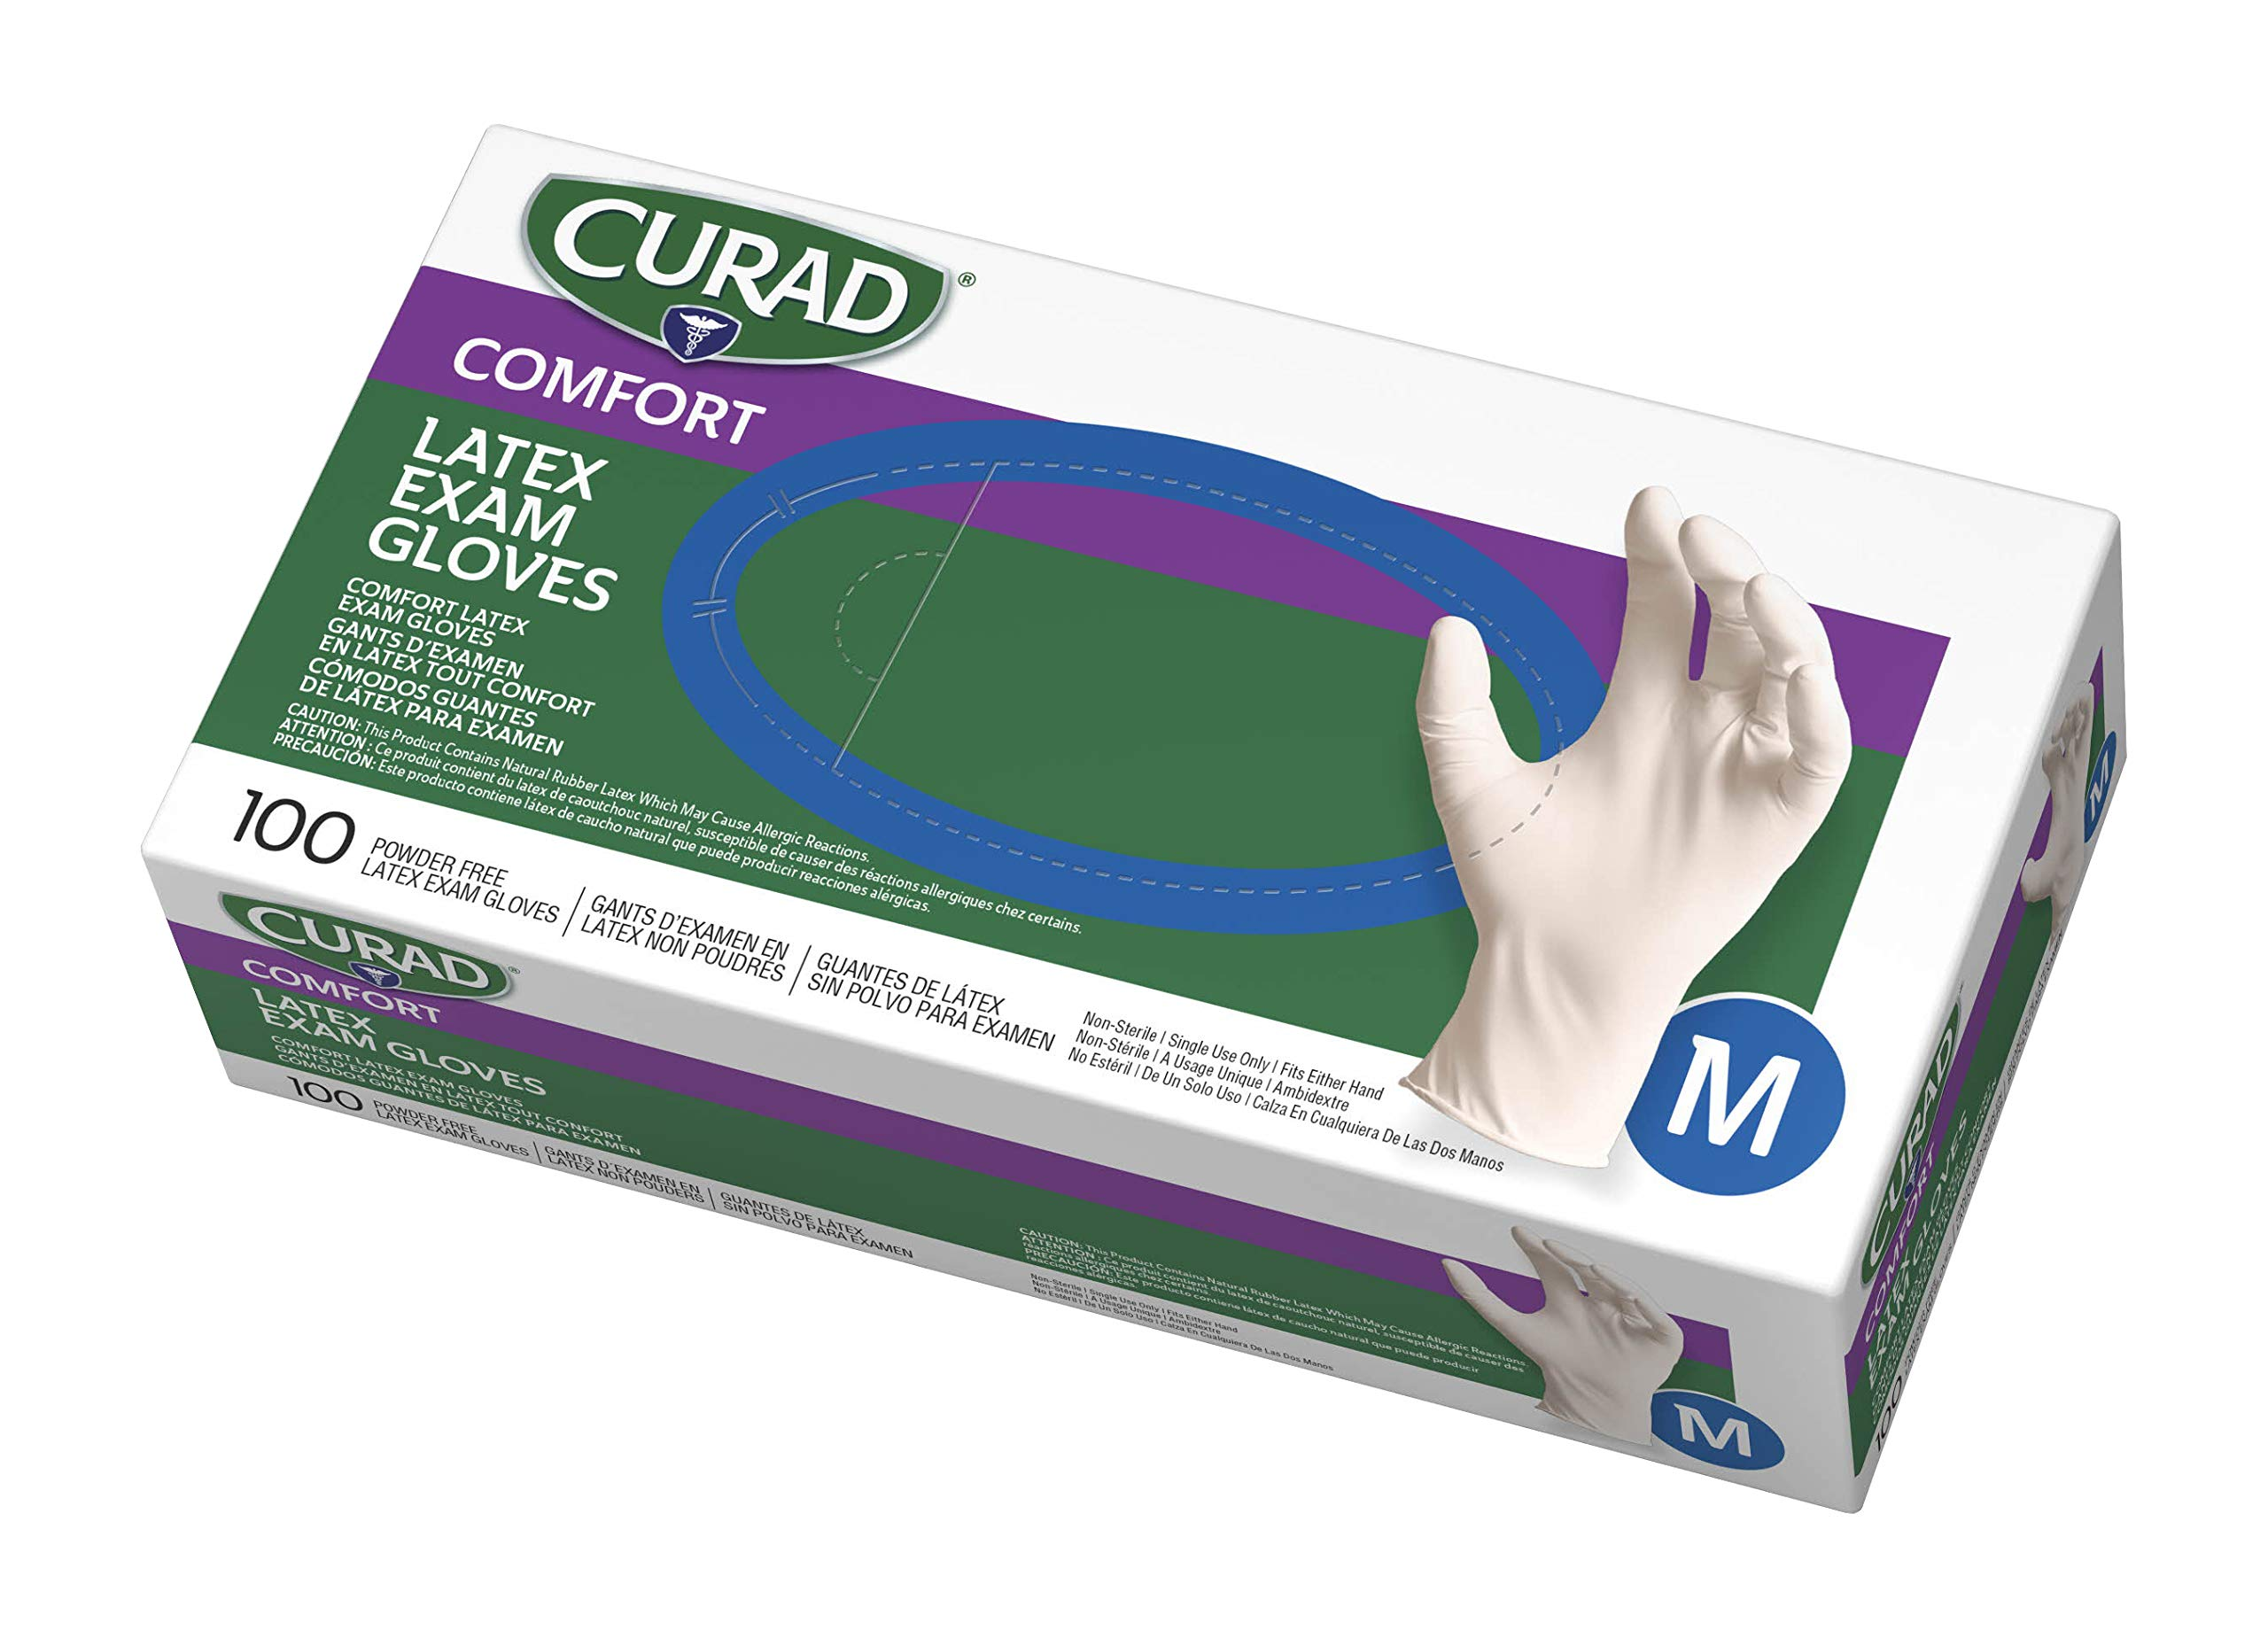 Curad Disposable Medical Latex Gloves, Powder Free Latex Gloves are Textured, Medium, Case of 10  (1000 Gloves) by Curad